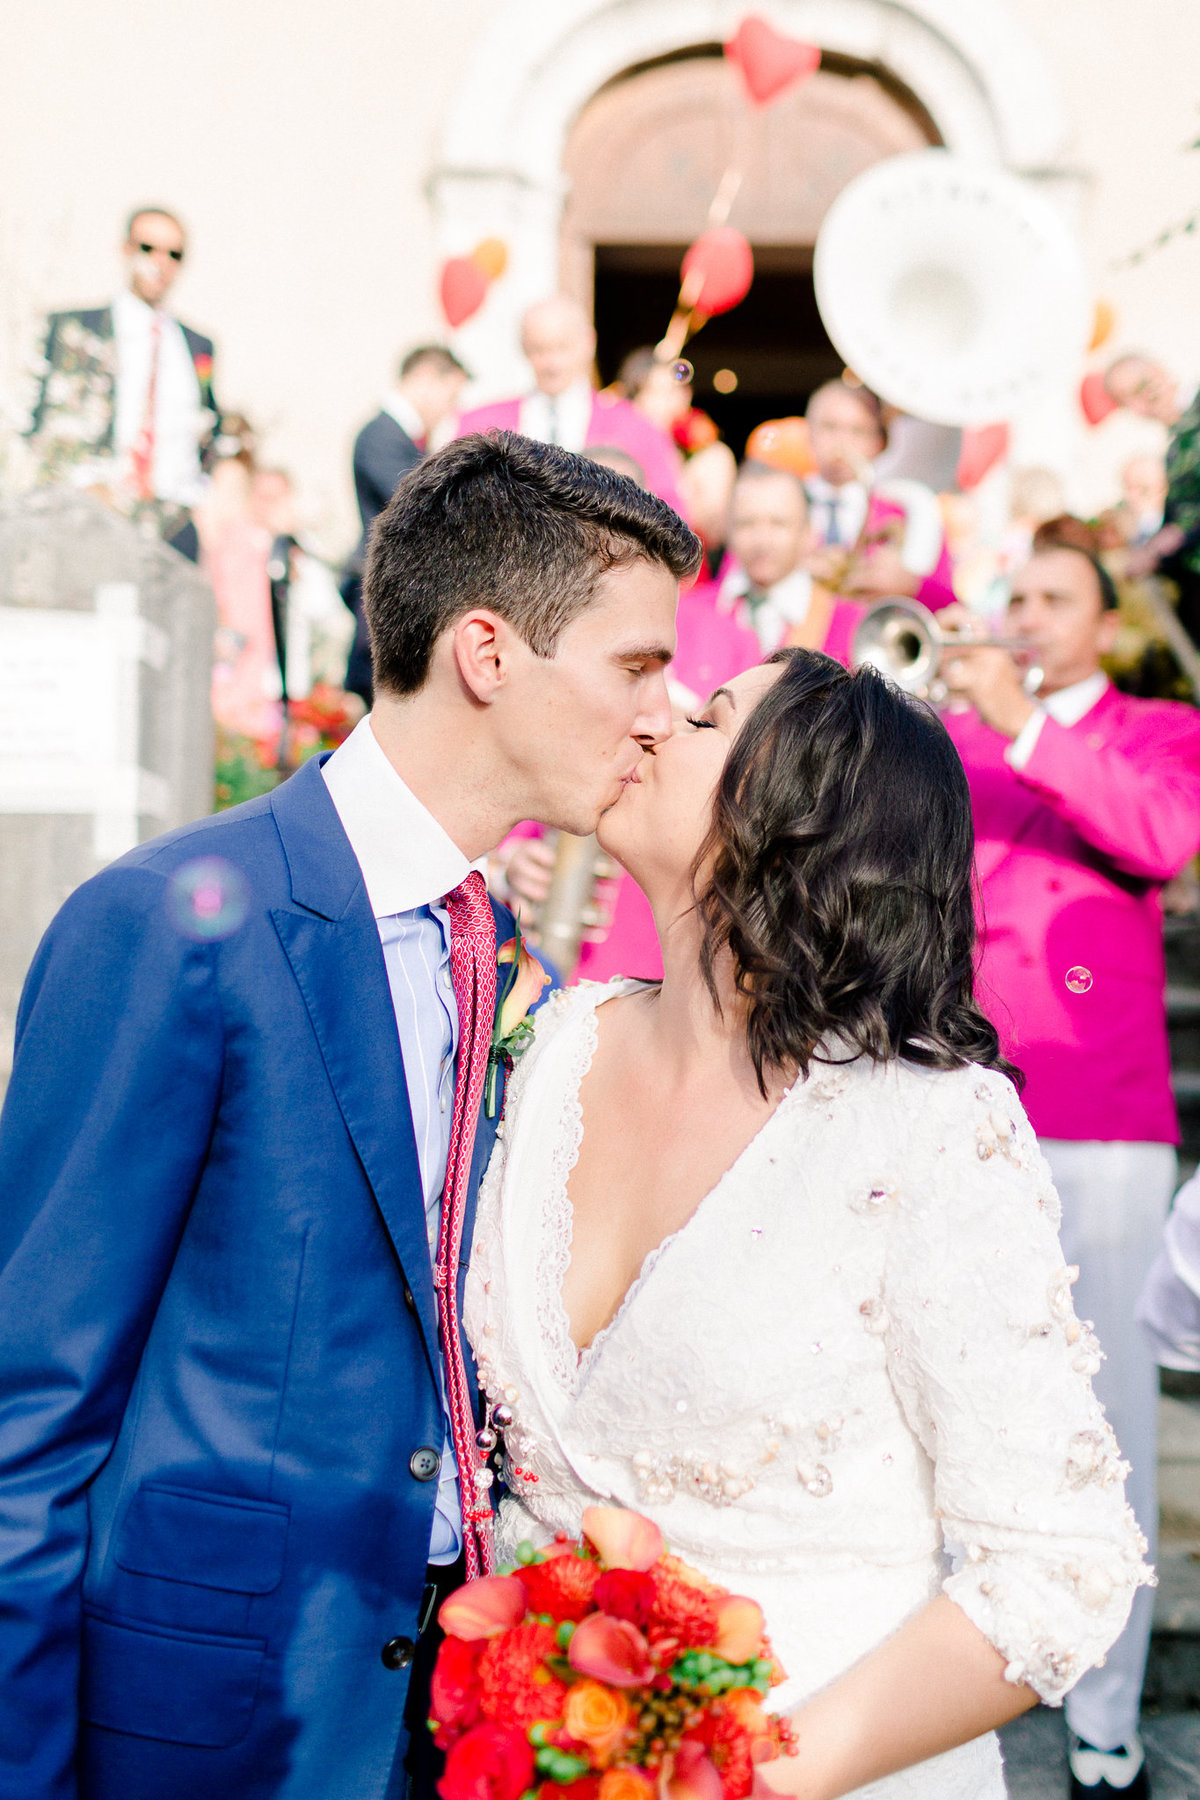 photographe-mariage-talloires-france-lisa-renault-photographie-wedding-destination-photographer-100